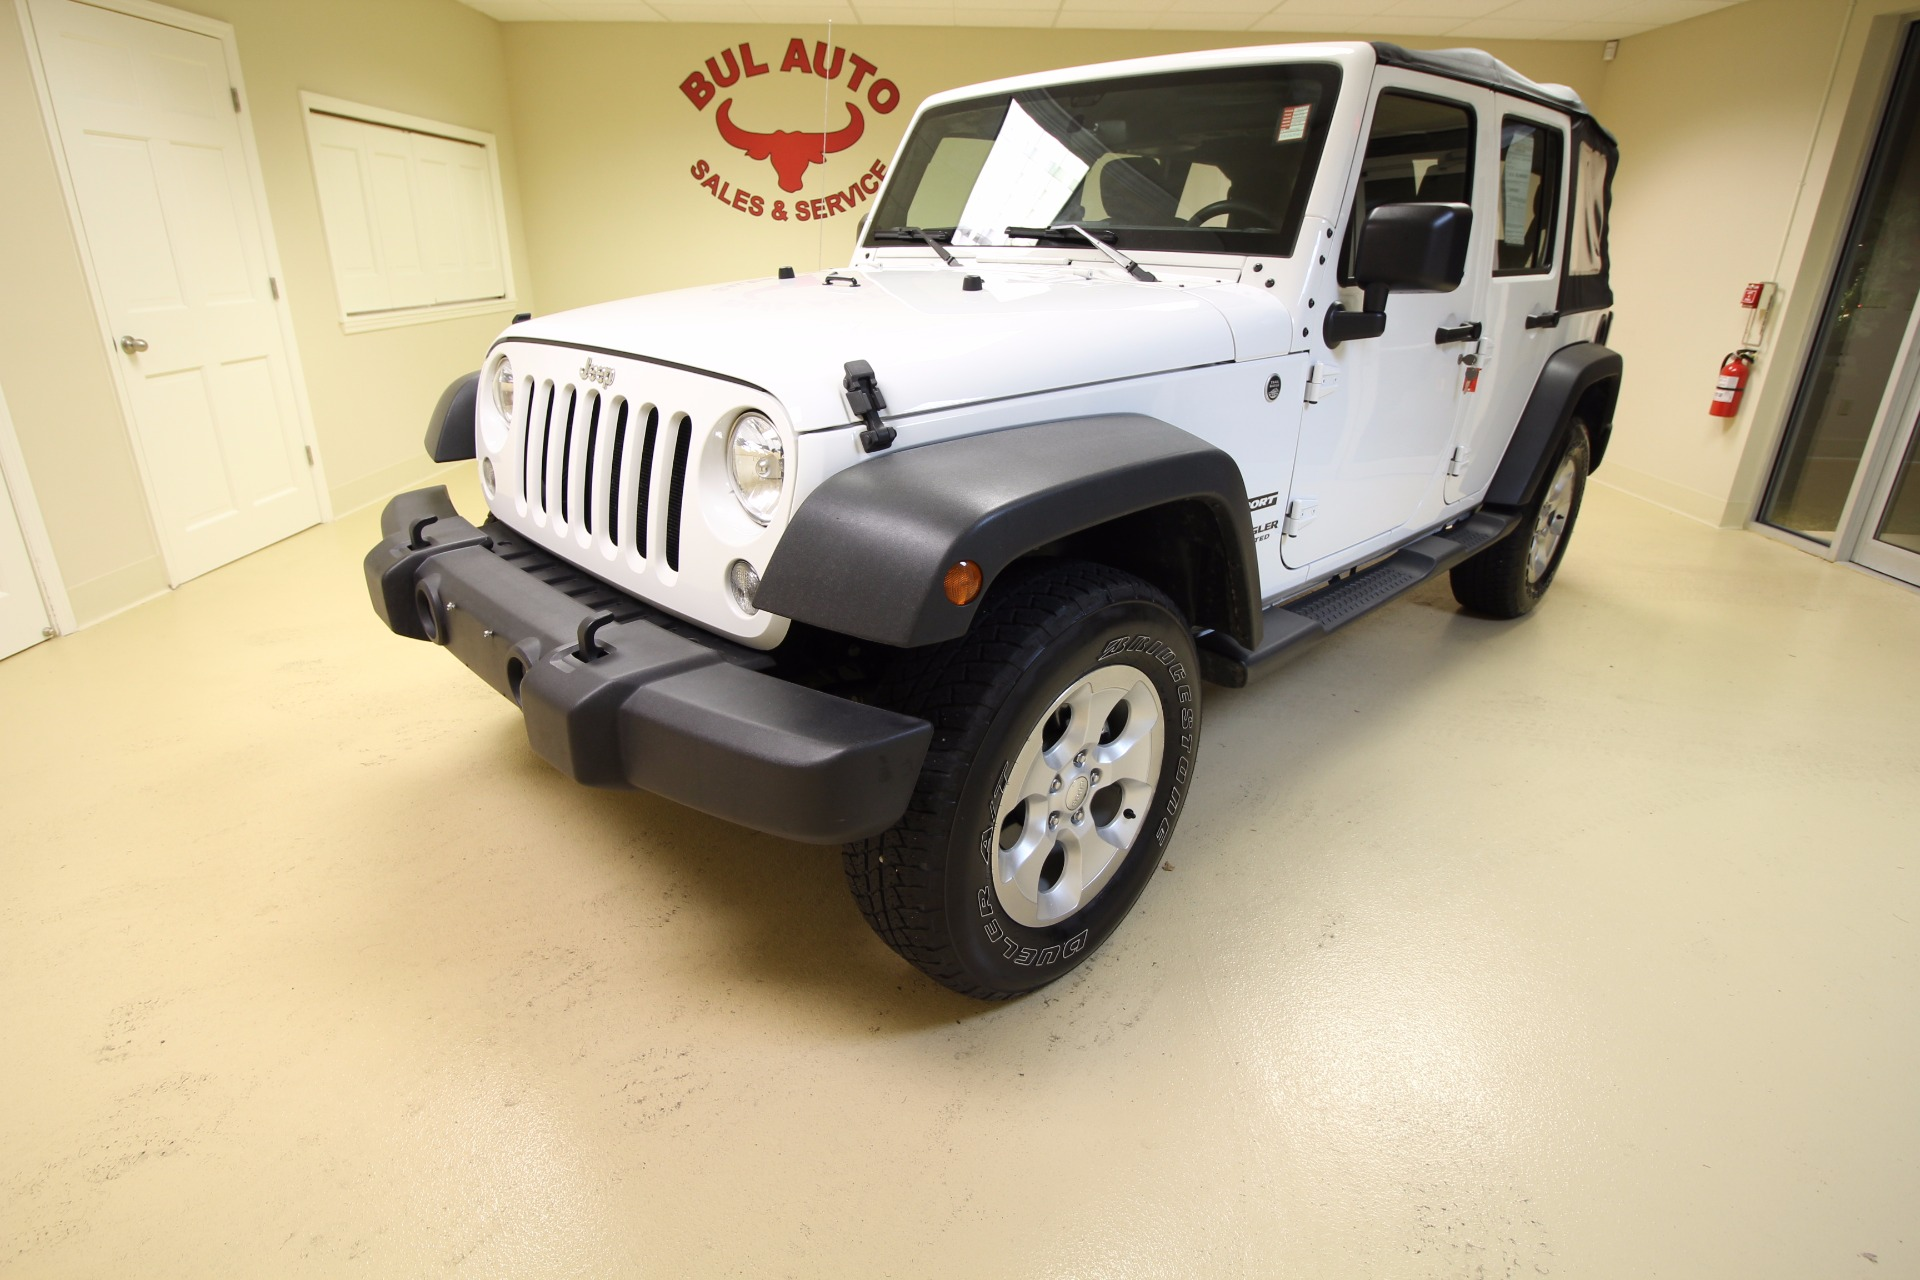 2015 jeep wrangler unlimited sport 4wd stock 16318 for sale near albany ny ny jeep dealer. Black Bedroom Furniture Sets. Home Design Ideas